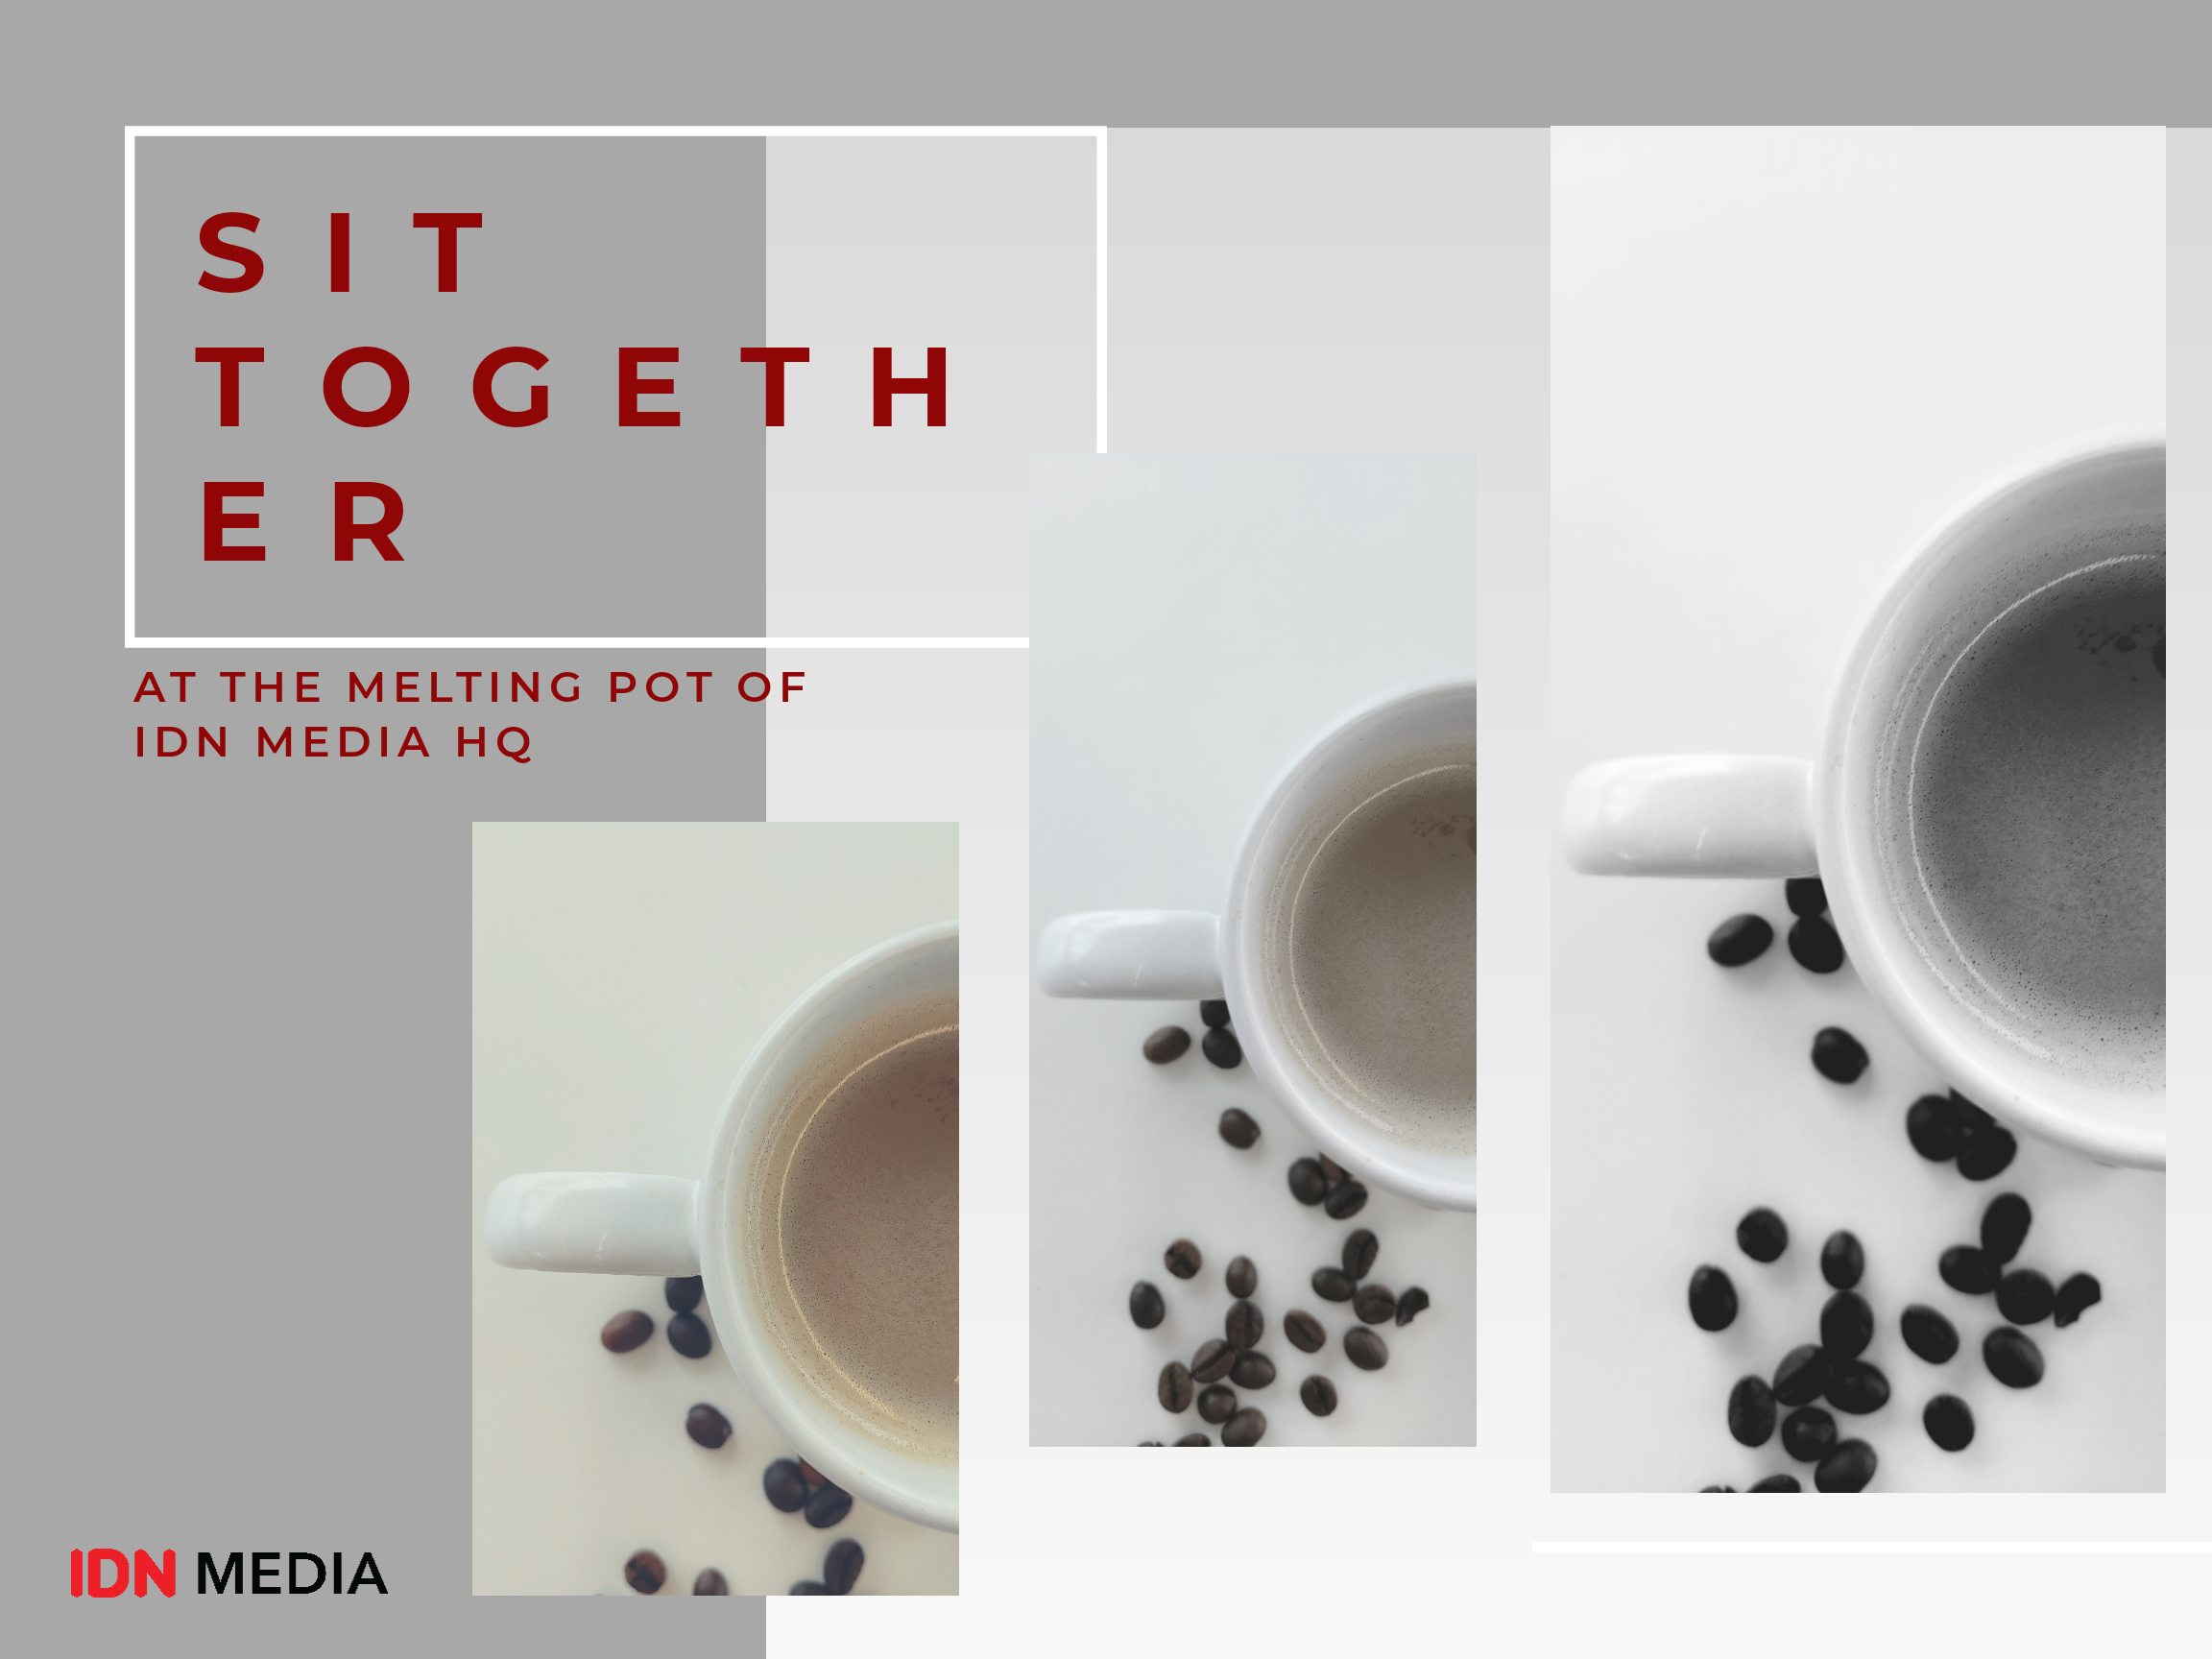 It's Coffee Time in IDN Media's Melting Pot